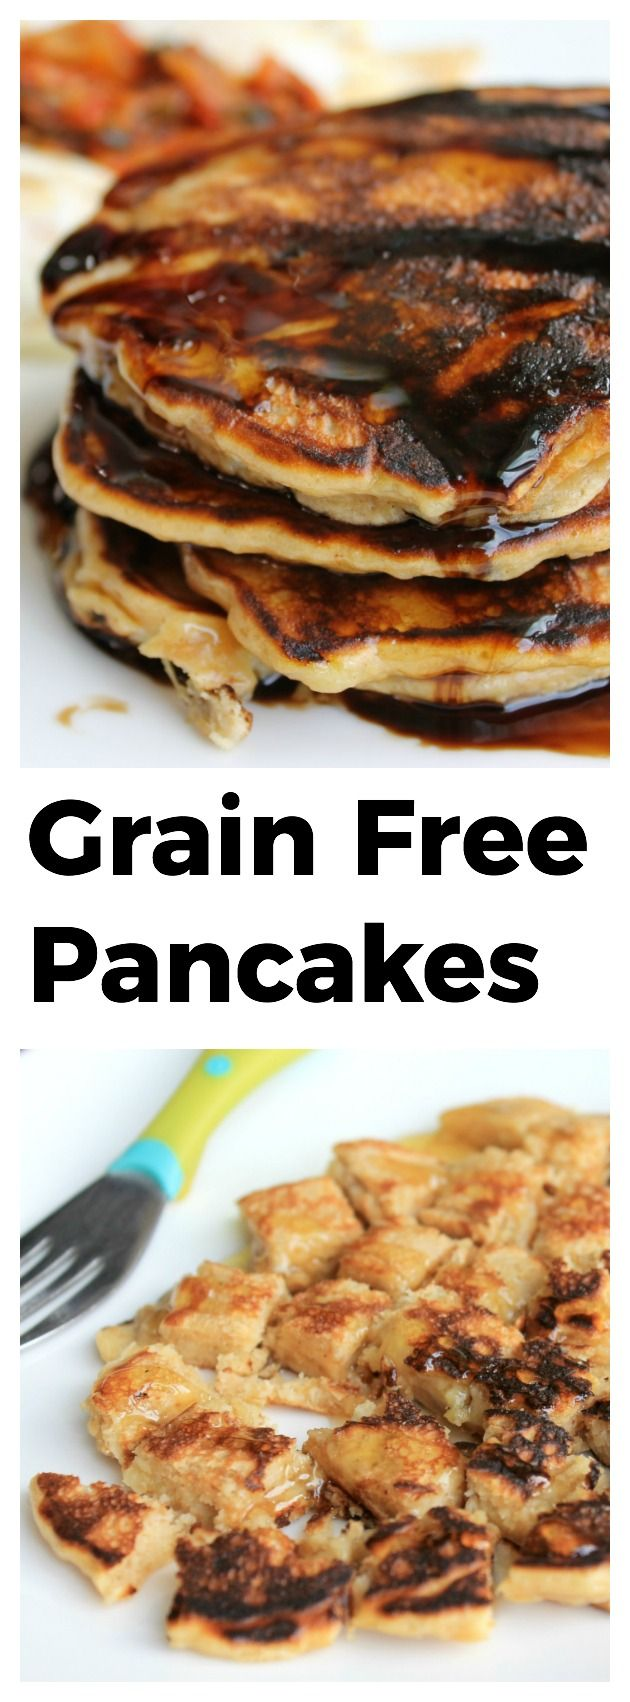 Grain Free Pancakes: These pancakes come together easily with just 3 ingredients. They are guilt free, filled with healthy fats, and completely void of sugar when topped with blueberry balsamic instead of maple syrup. GAPS Diet & Paleo friendly. Our oldest daughter (she is a few months away from her 3rd birthday) has loved pancakes since about 10 months old. I started making pancakes for her out of just egg